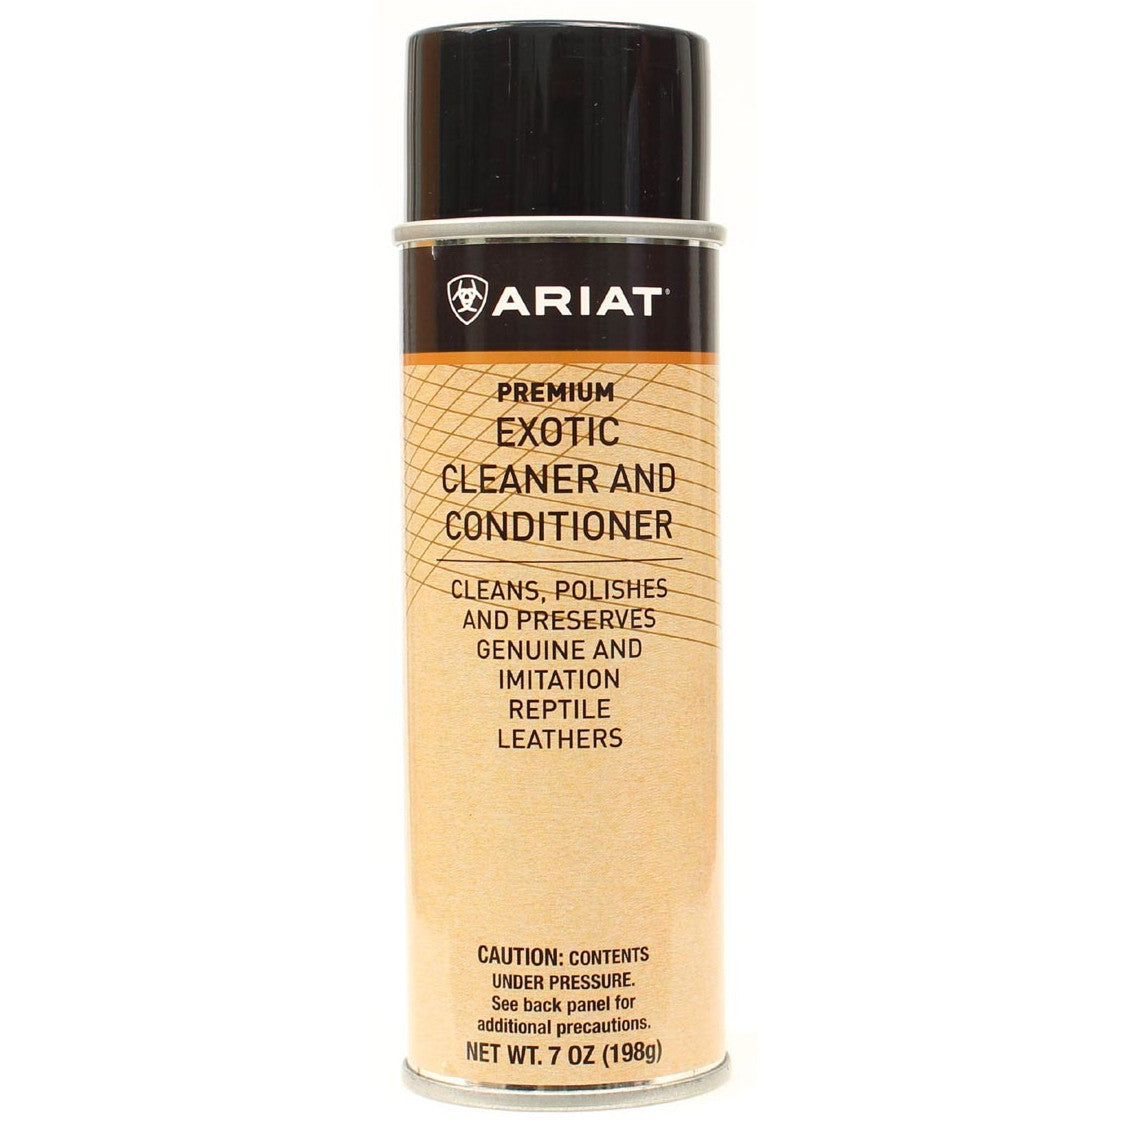 Ariat Exotic Leather Cleaner and Conditioner - 7 oz.